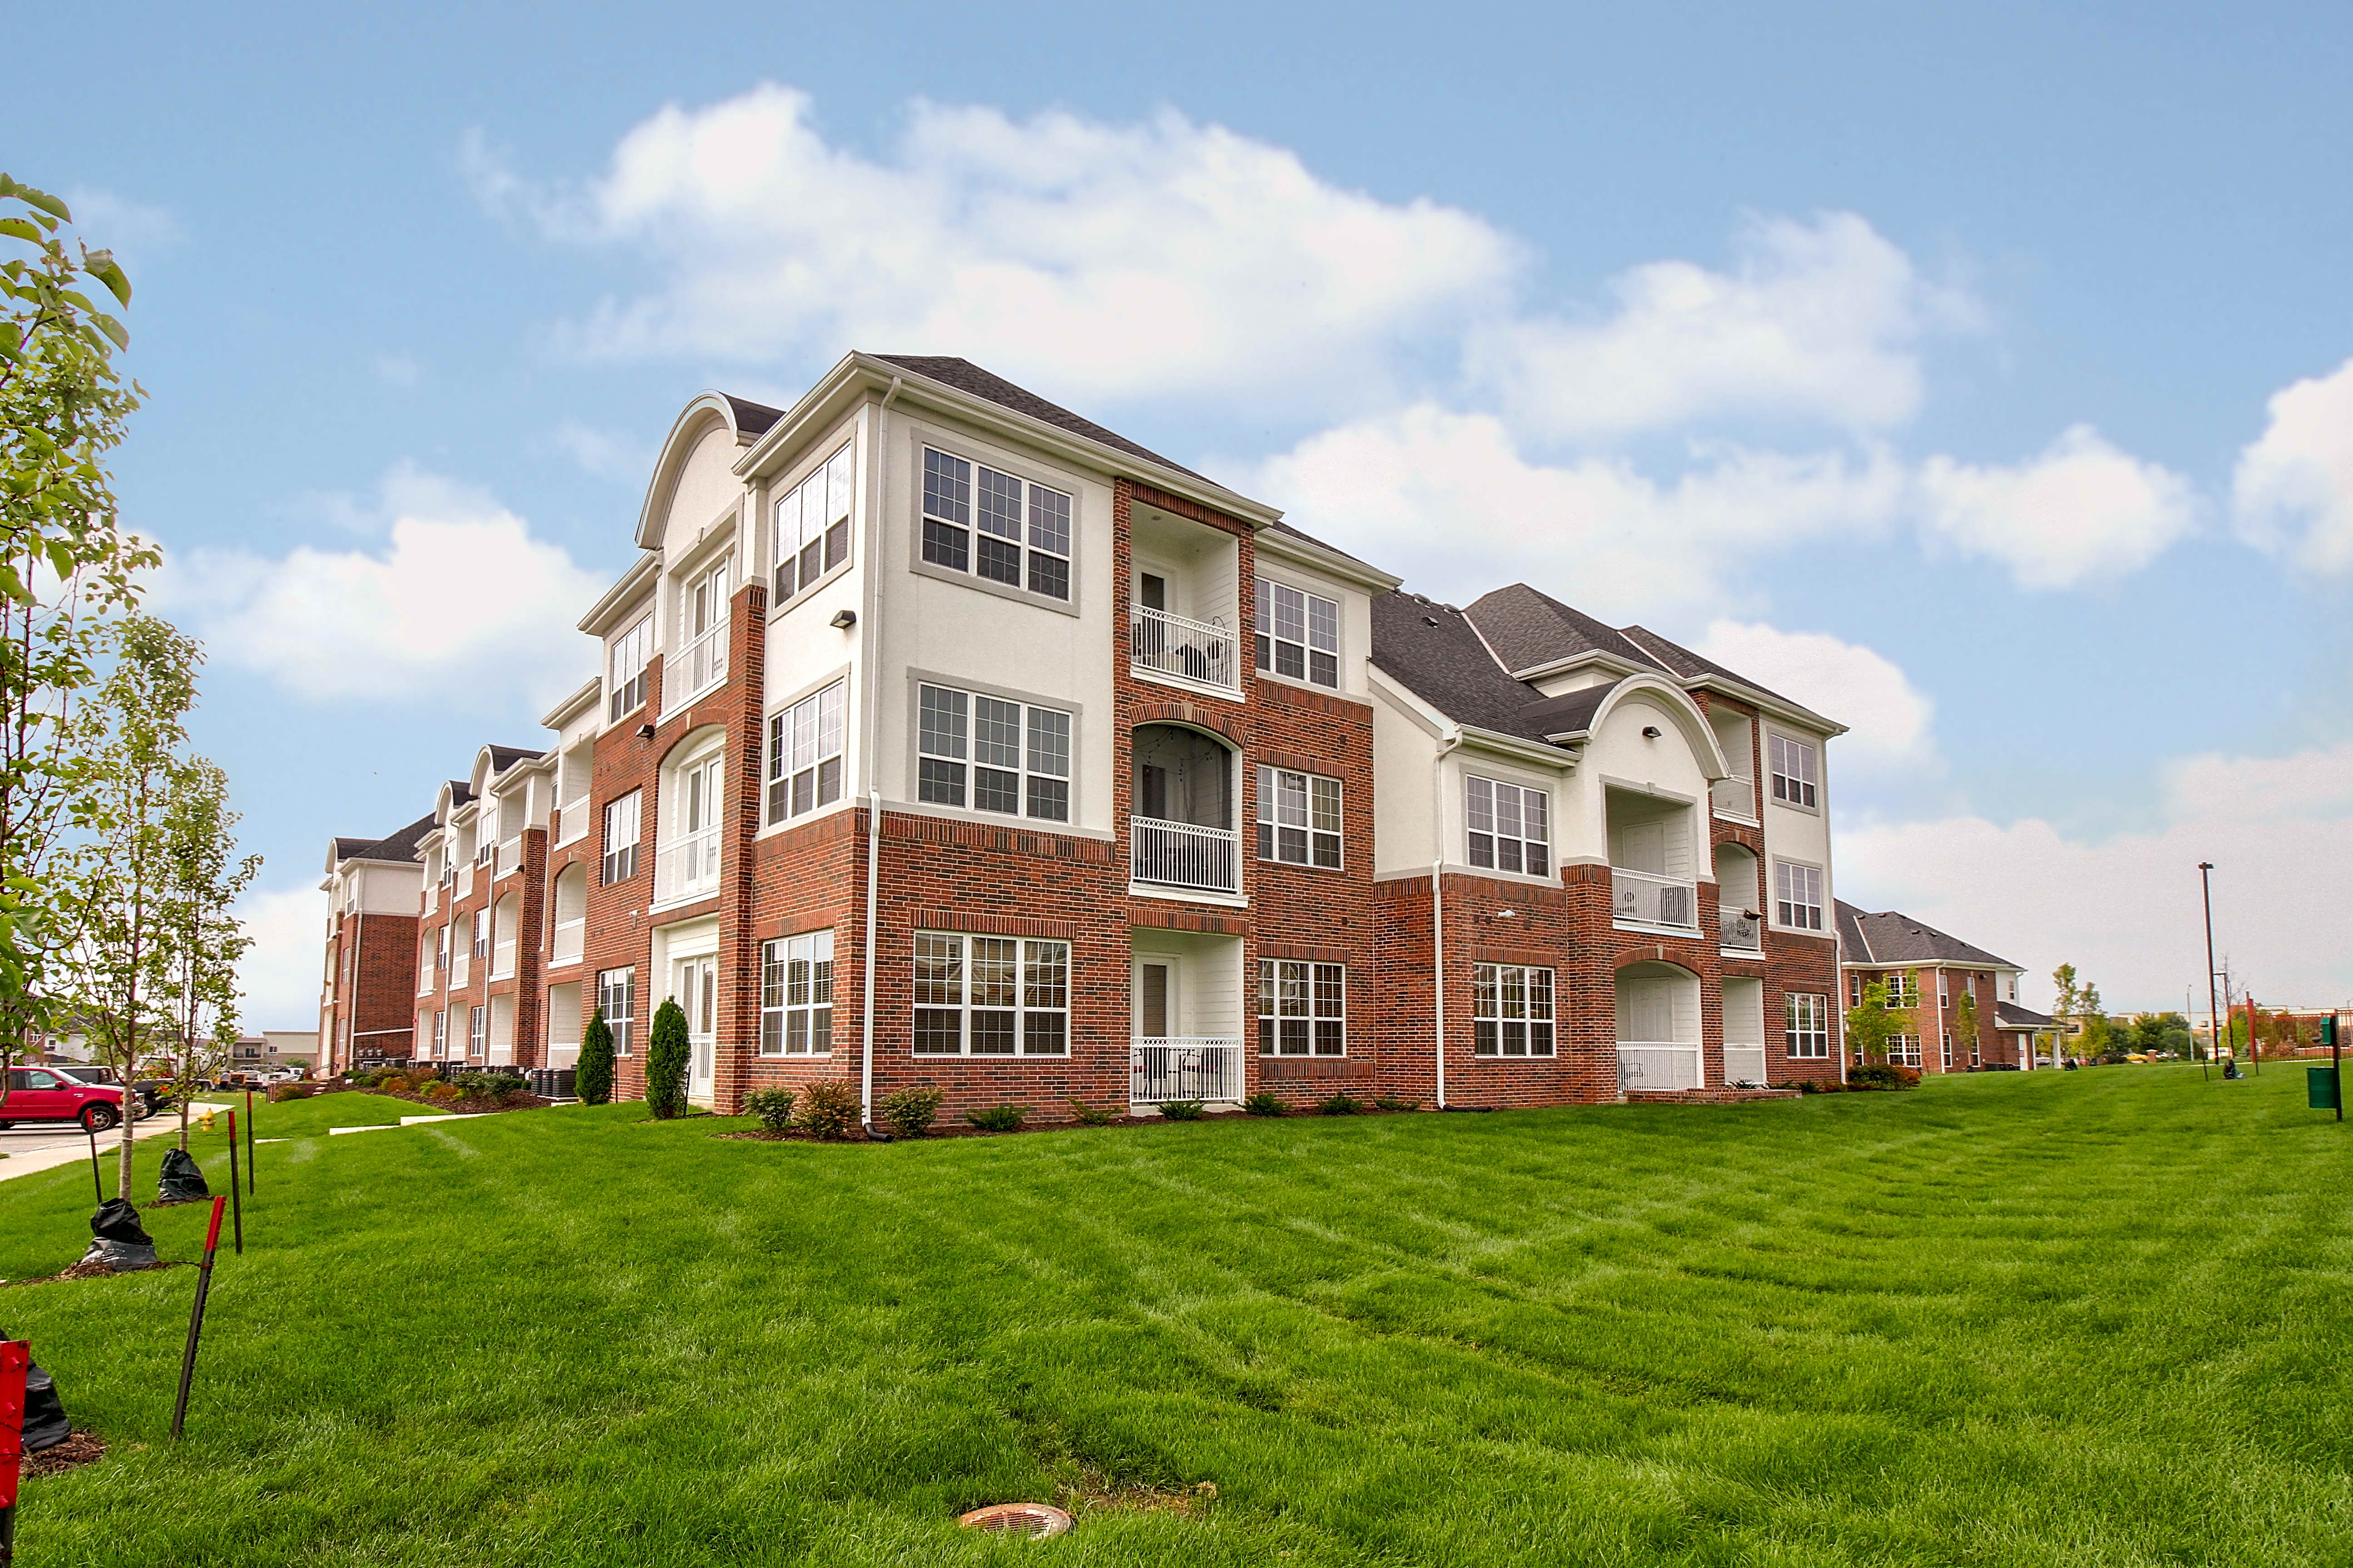 Apartments Near Aveda Institute-Des Moines BelleMeade Apartments for Aveda Institute-Des Moines Students in West Des Moines, IA